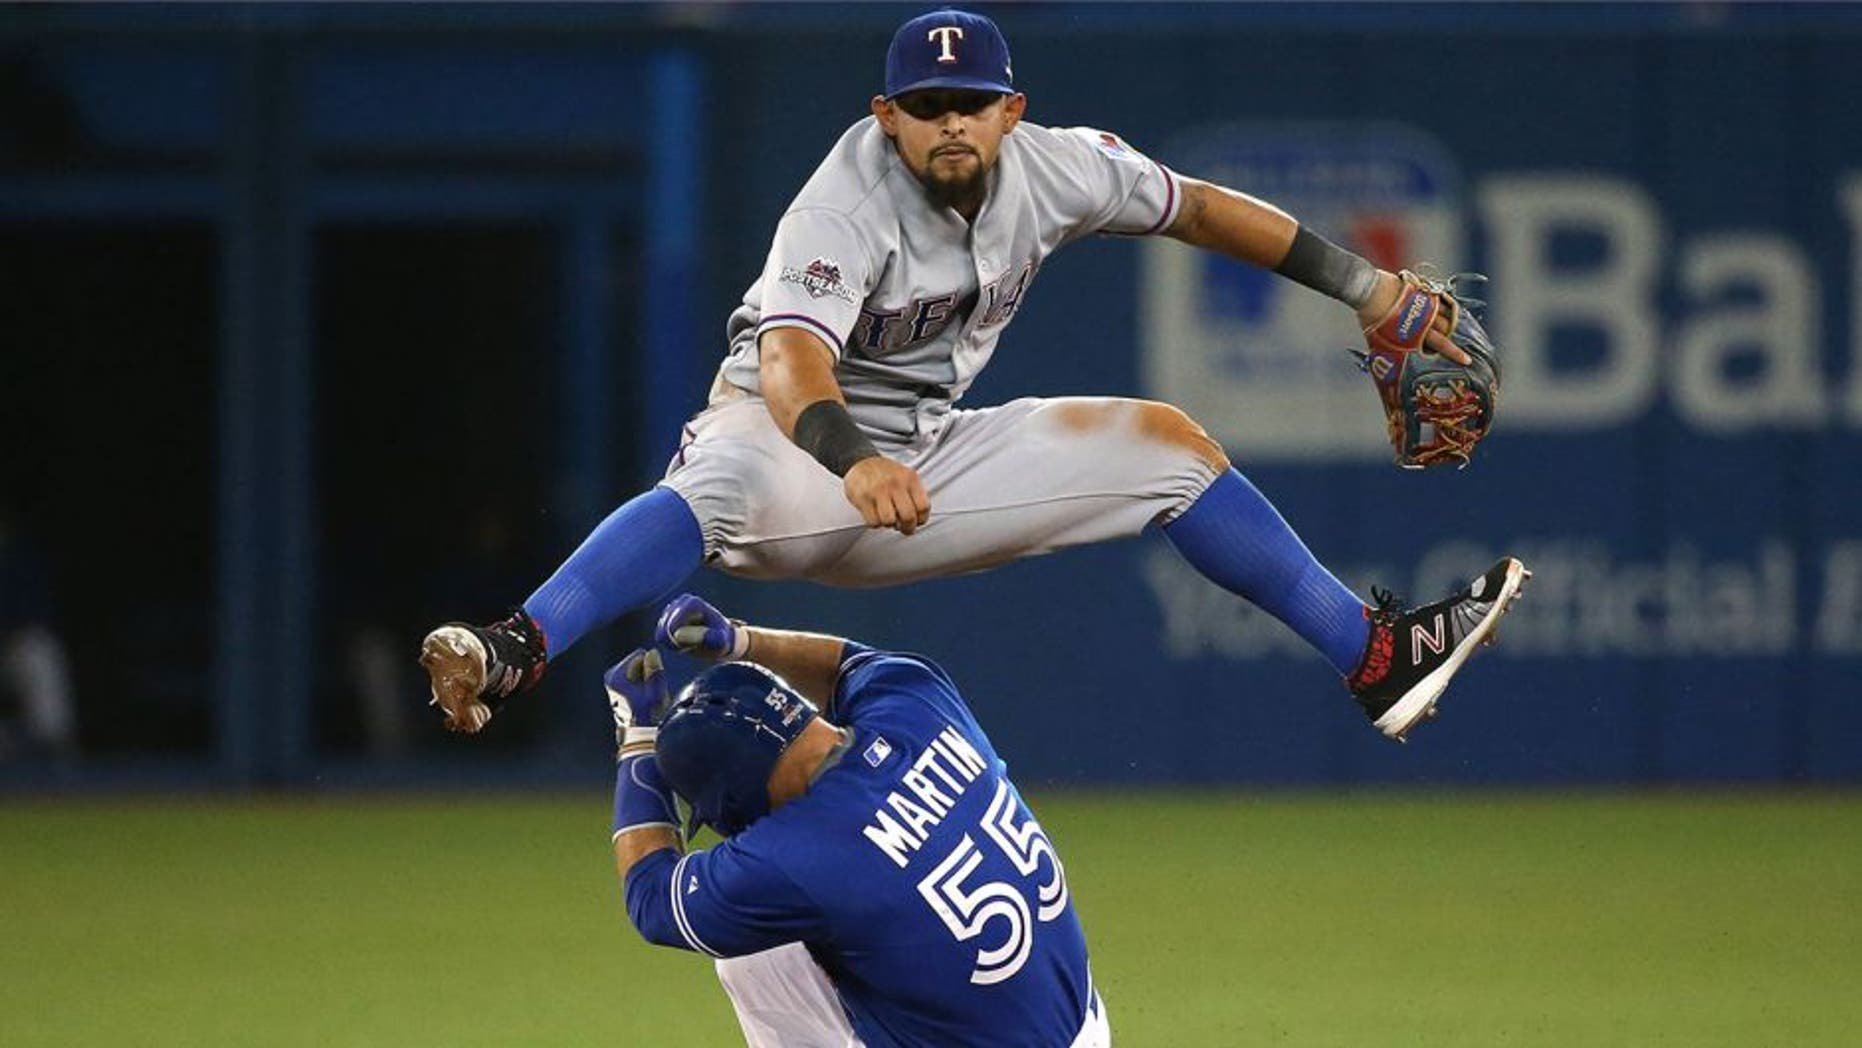 TORONTO, ON- OCTOBER 9: Joey Gallo leaps over Russell Martin turning a double play. The Toronto Blue Jays and Texas Rangers play game two of the MLB American League Division Series . at Rogers Centre in Toronto. October 9, 2015. (Steve Russell/Toronto Star via Getty Images)